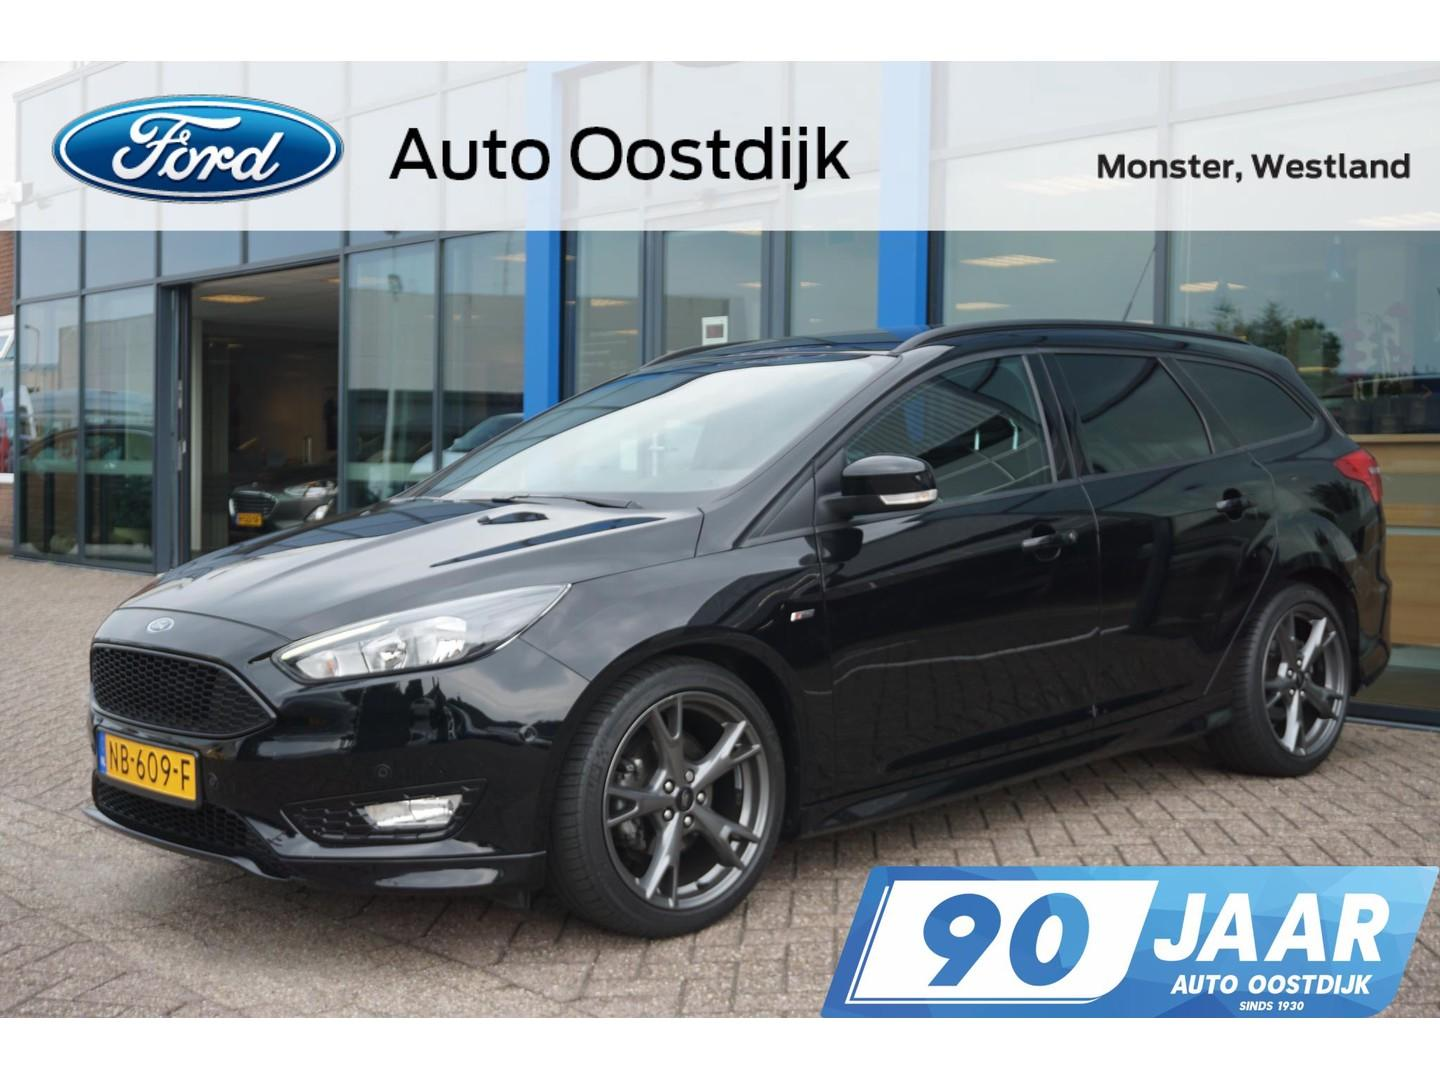 Ford Focus Wagon 1.0 st-line 125pk climate navi stoelverwarming 18inch parkeersensoren privacy glass